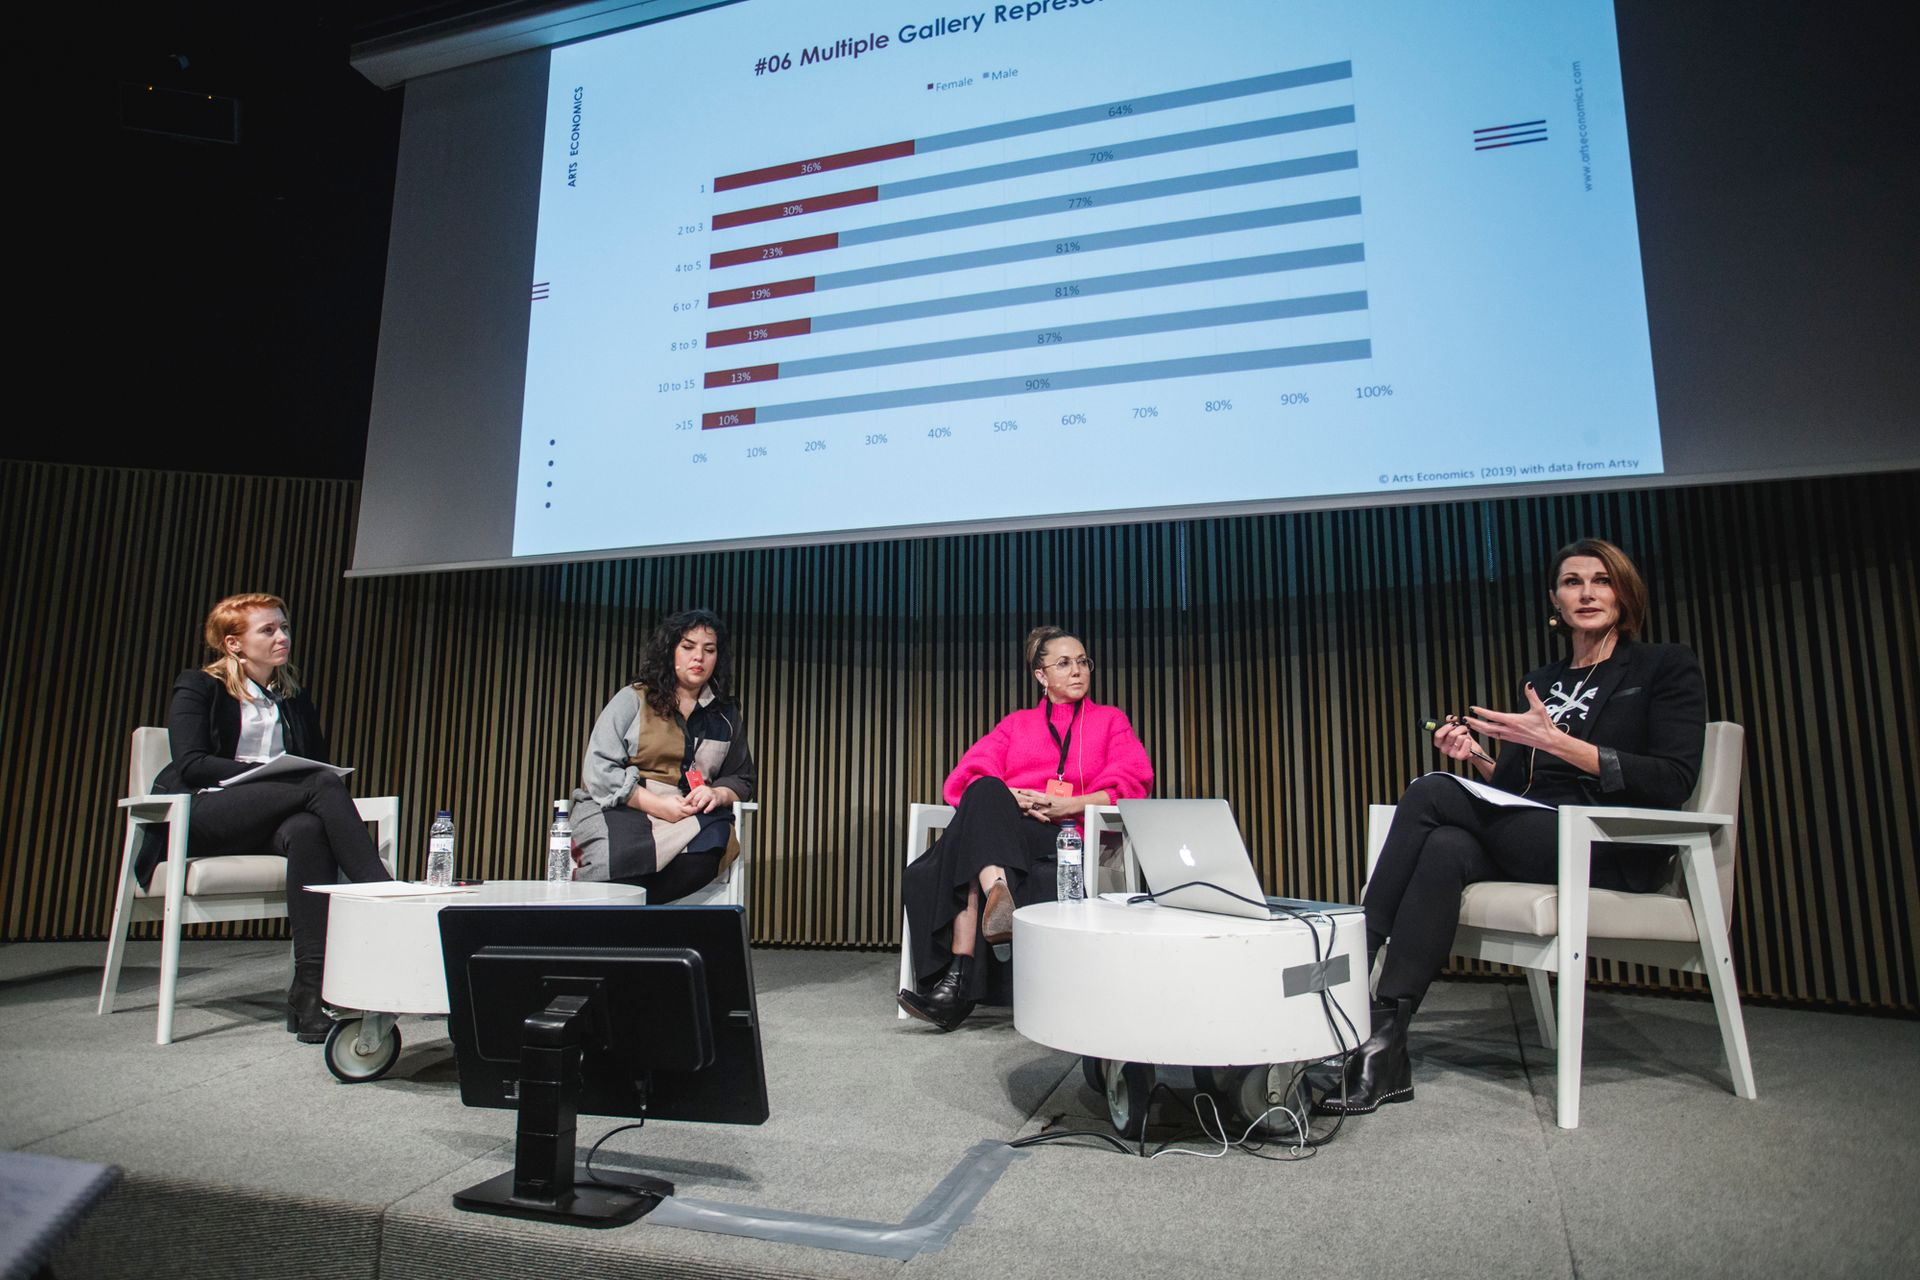 The economist Clare McAndrew presents her findings at Talking Galleries in Barcelona Courtesy of Talking Galleries. © Xavi Torrent